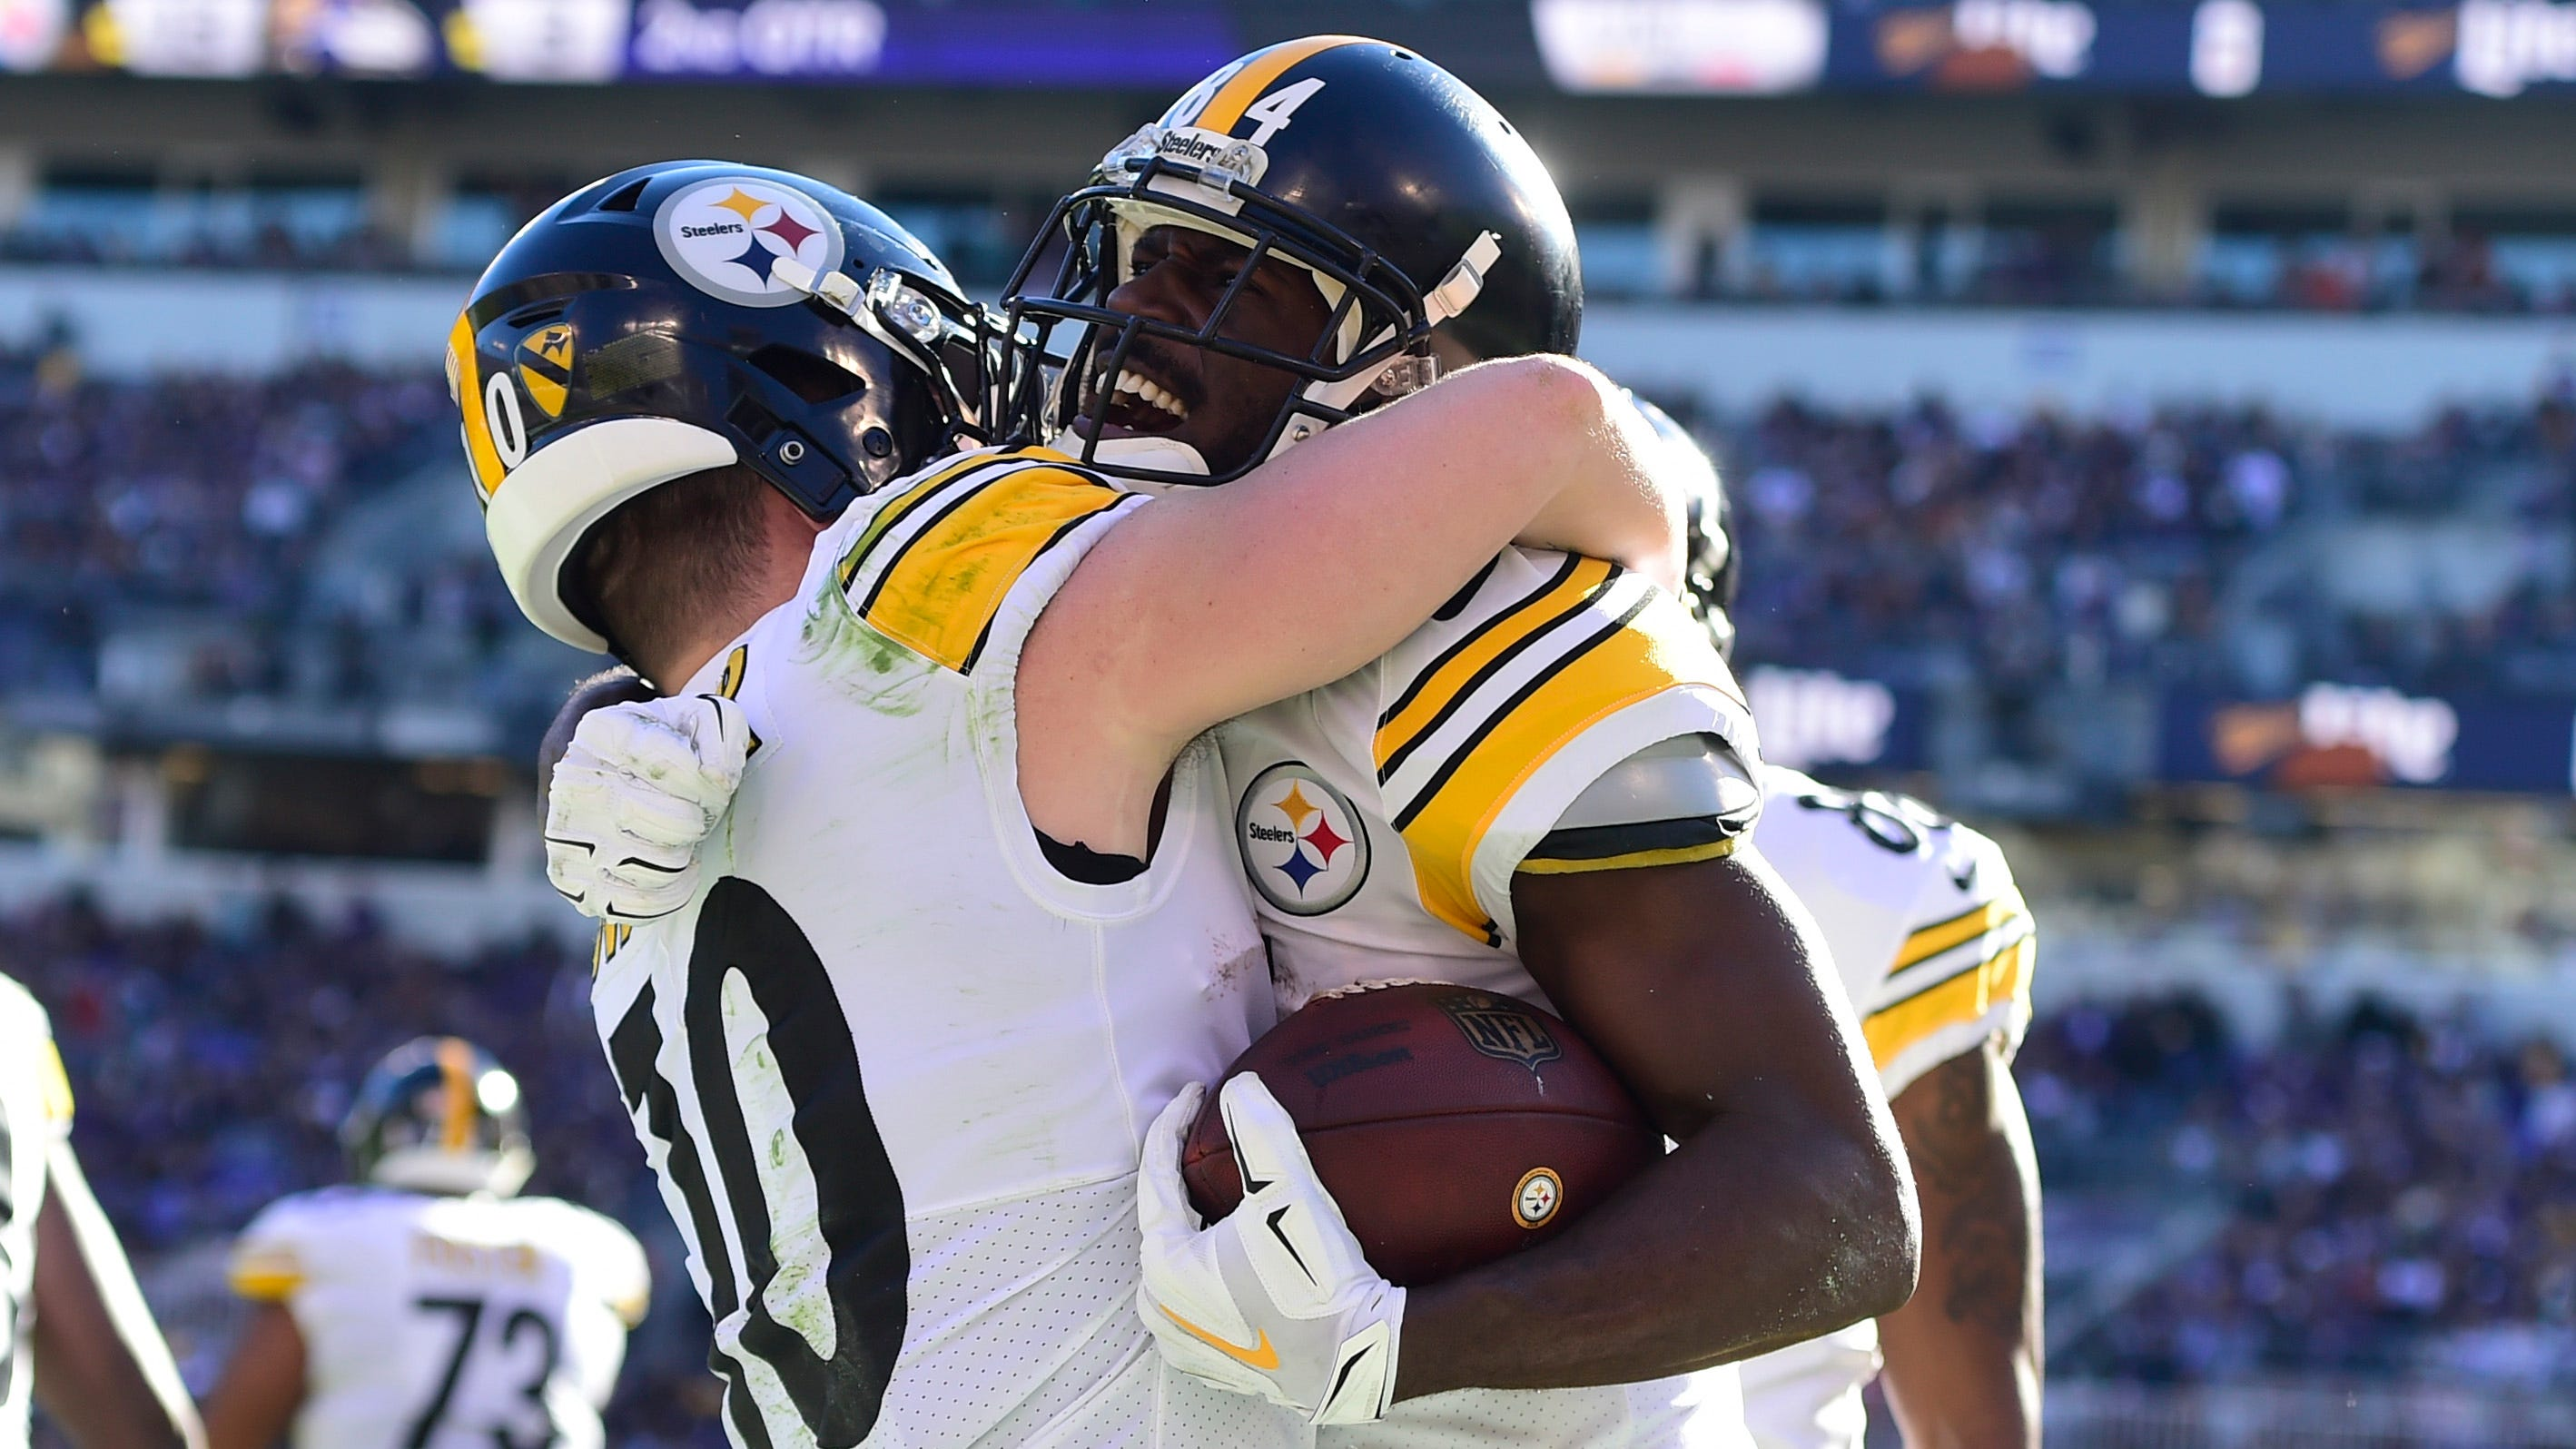 Ravens Rivals: Takeaways from the AFC North after week four